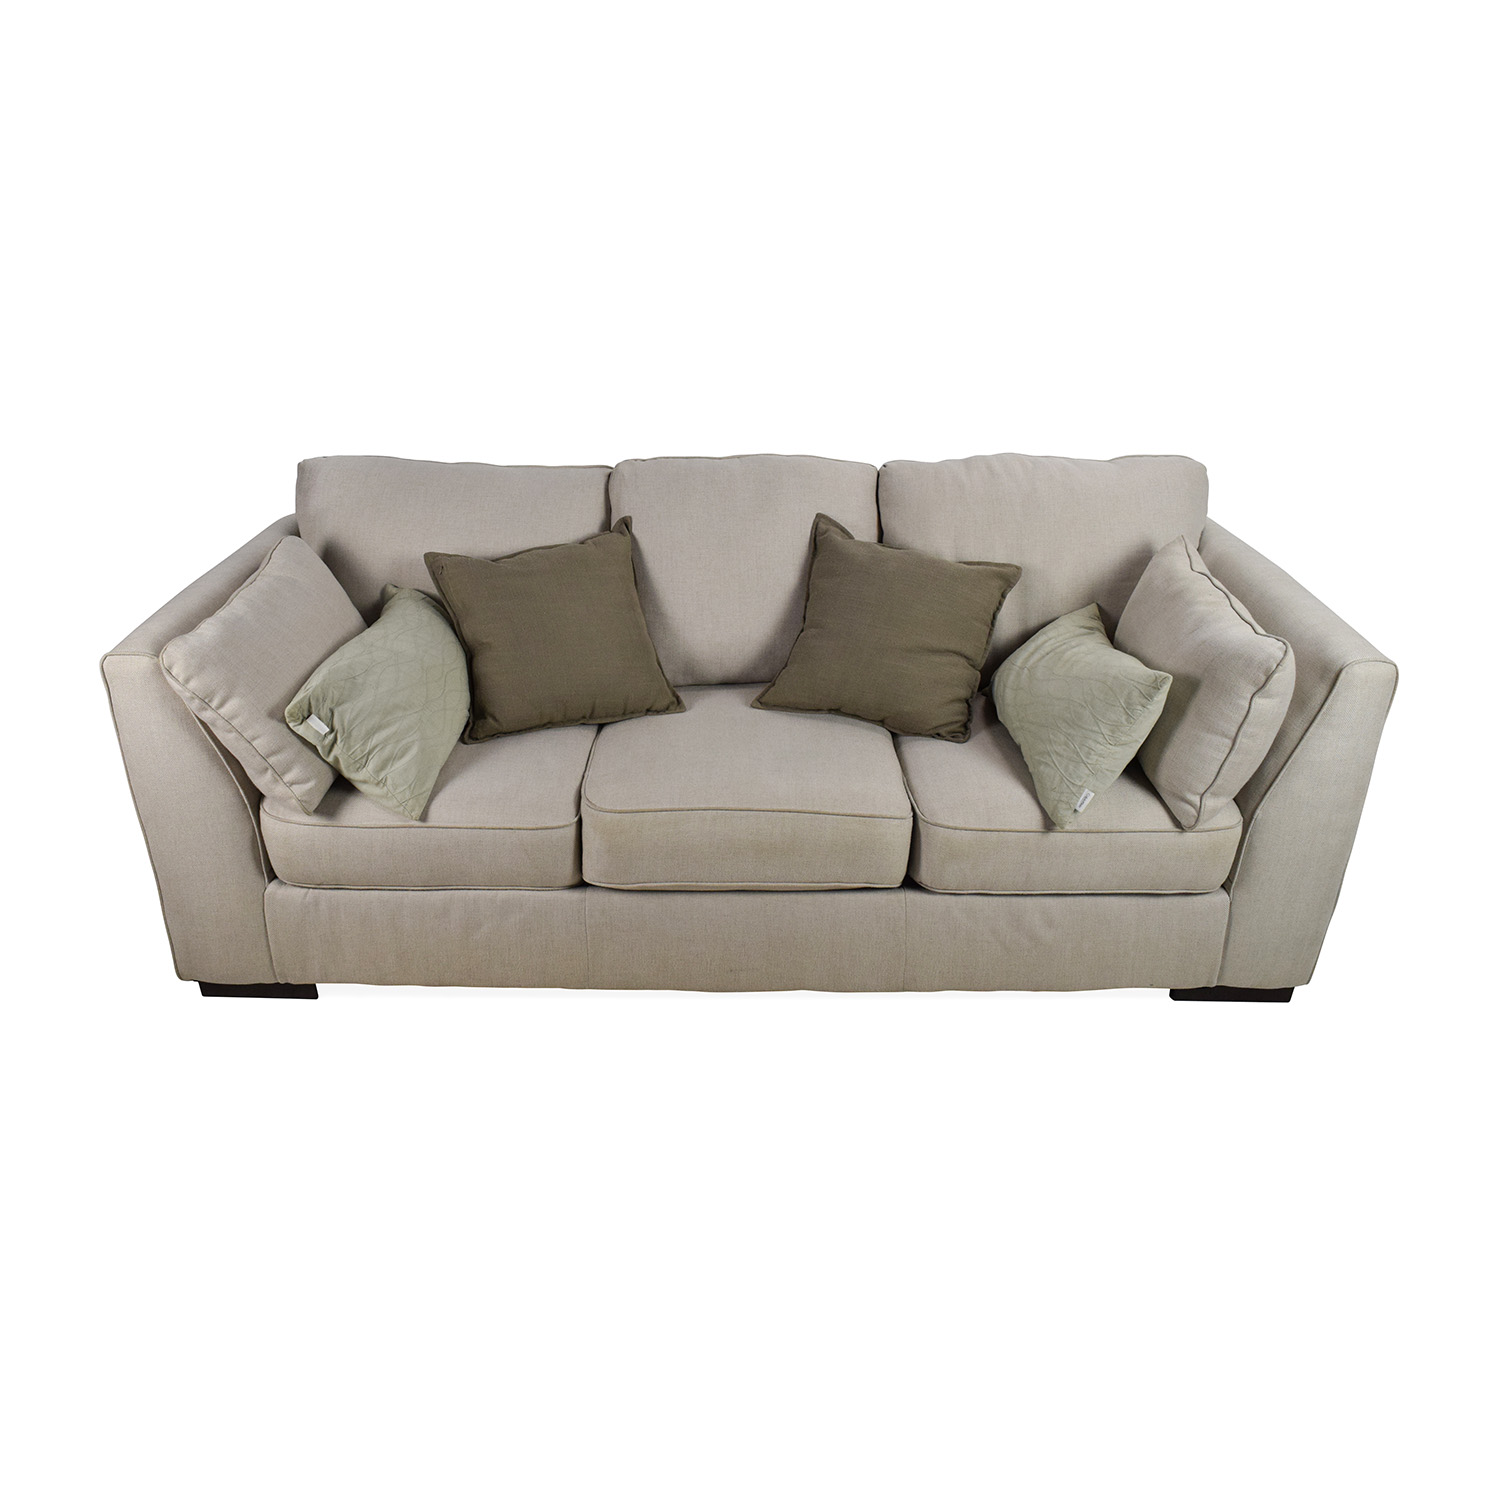 ... Buy Ashley Furniture Pierin Sofa Ashley Furniture ...